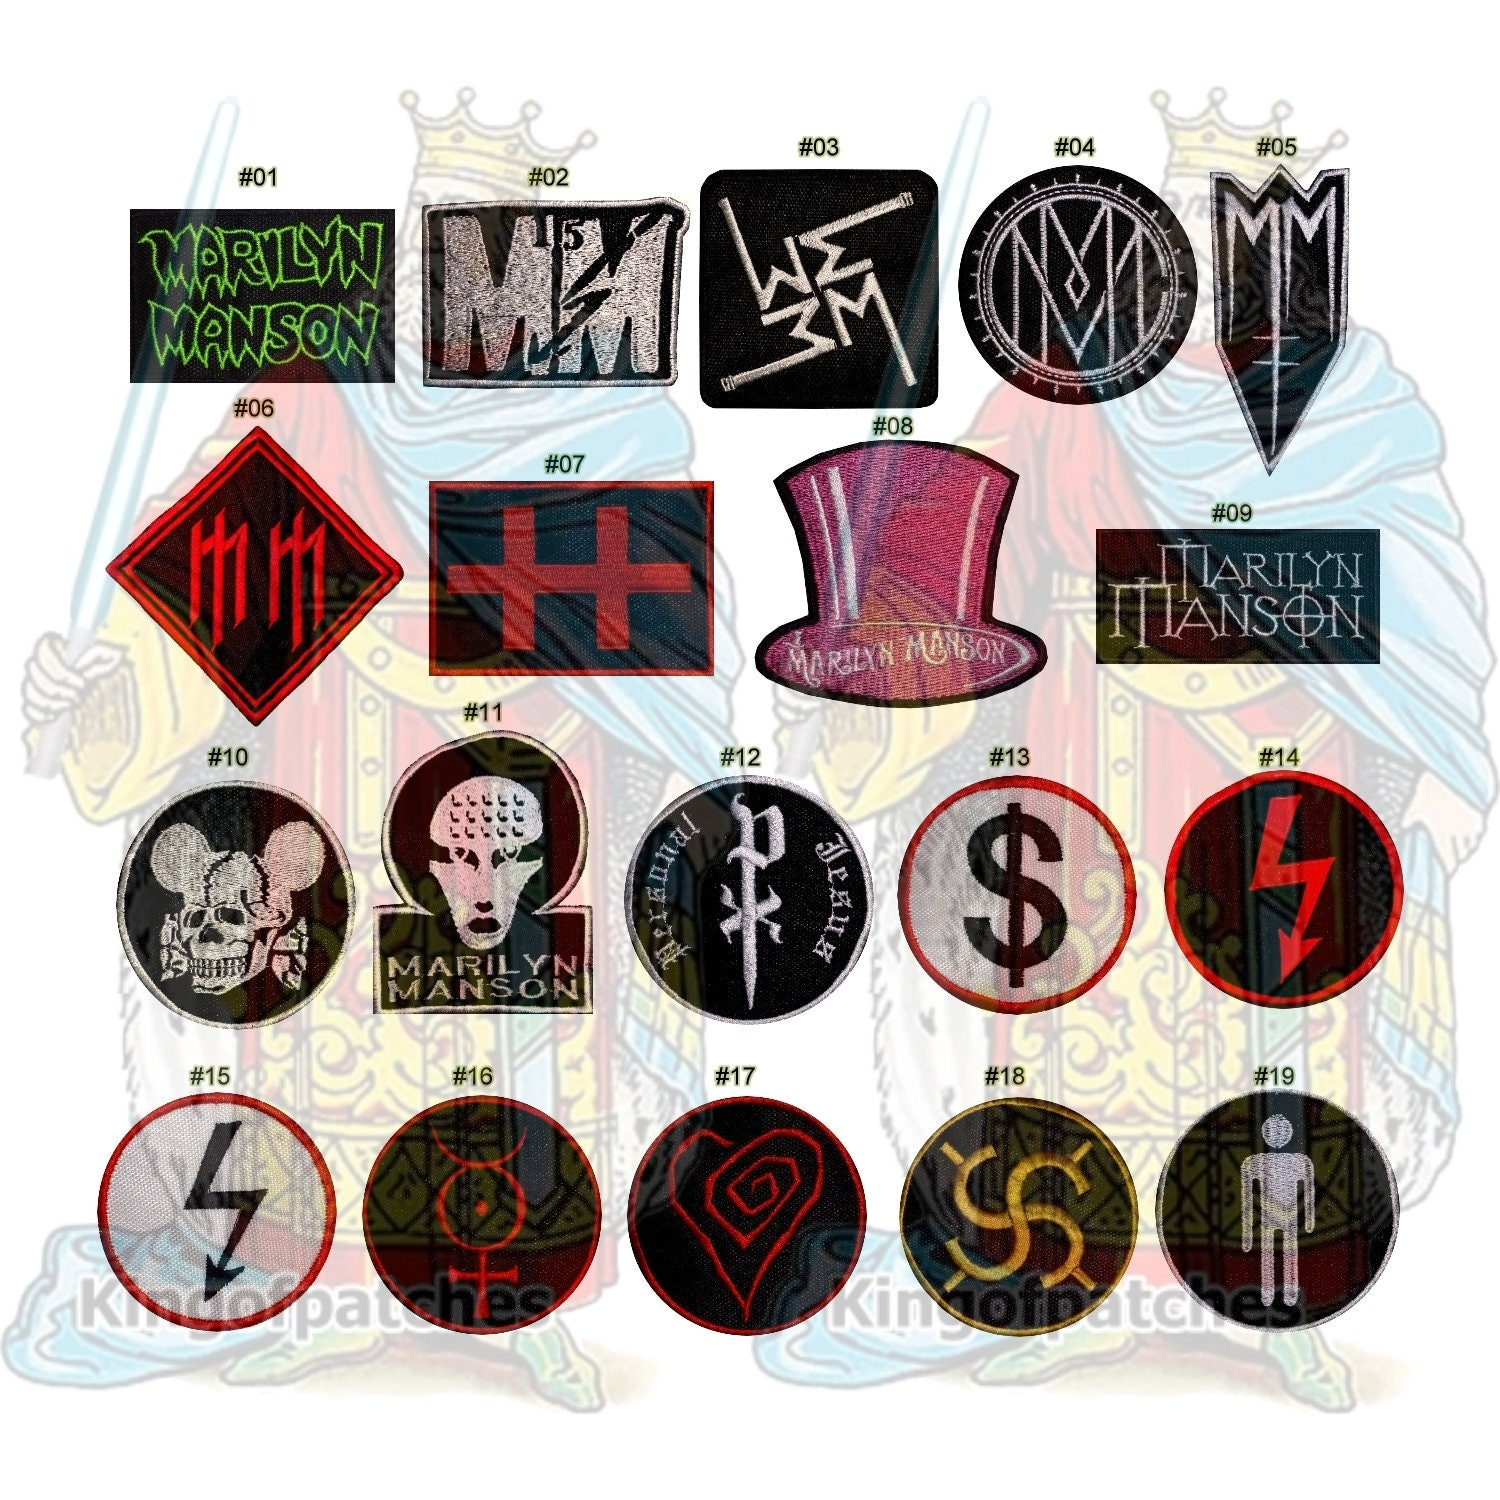 Marilyn manson embroidered patches rock hard metal music album zoom buycottarizona Images